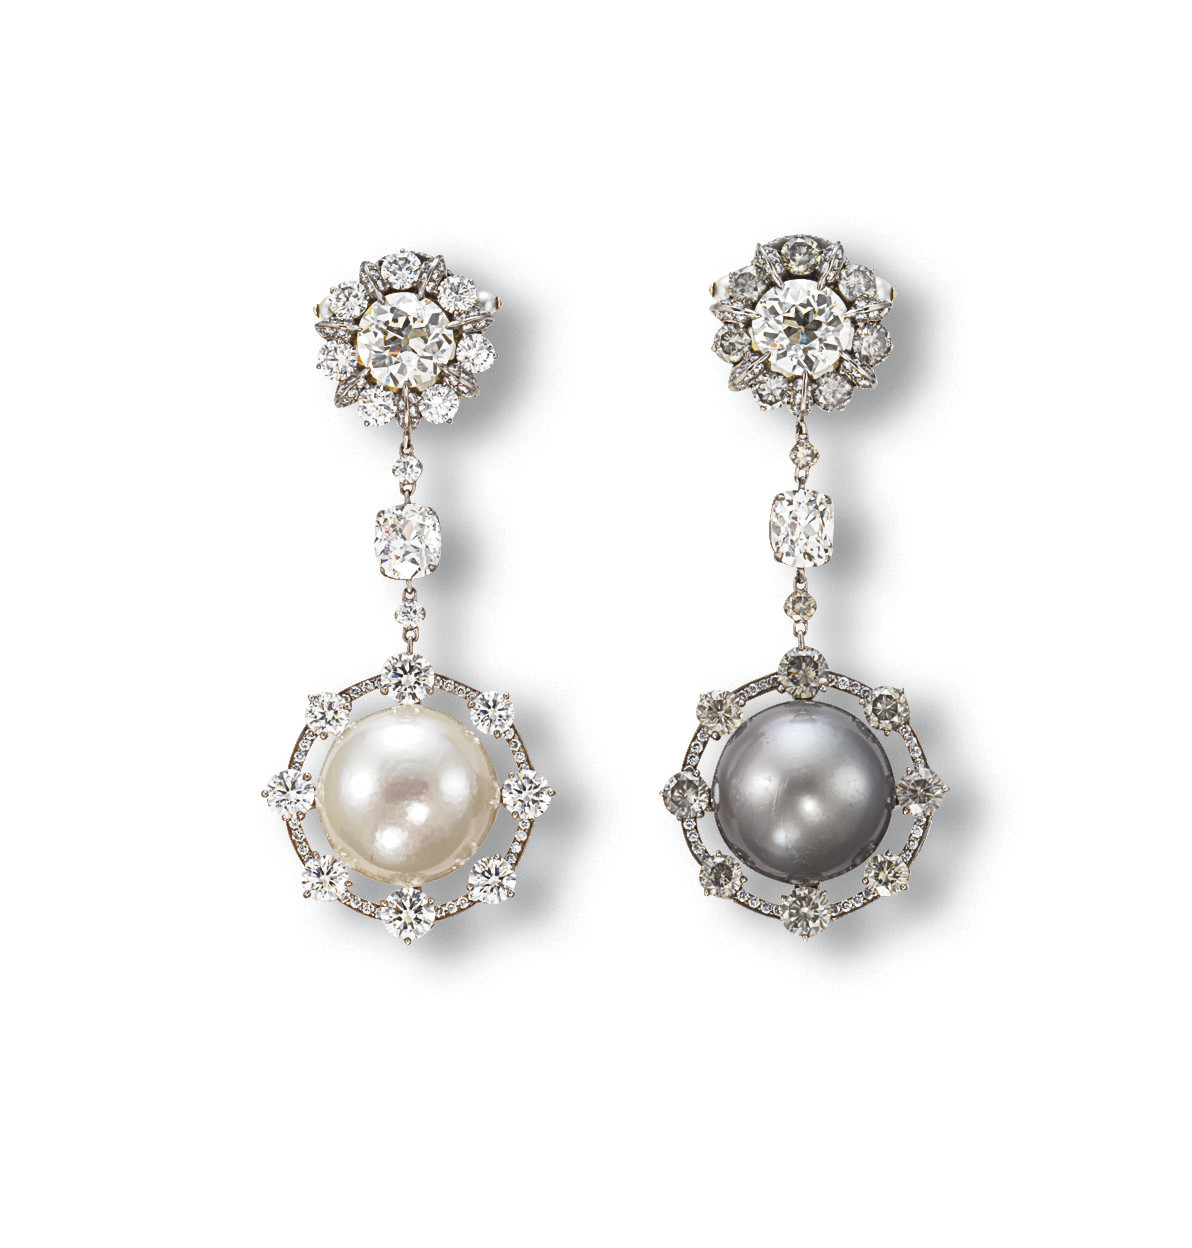 AN ELEGANT PAIR OF PEARL AND DIAMOND EAR PENDANTS, BY WALLACE CHAN